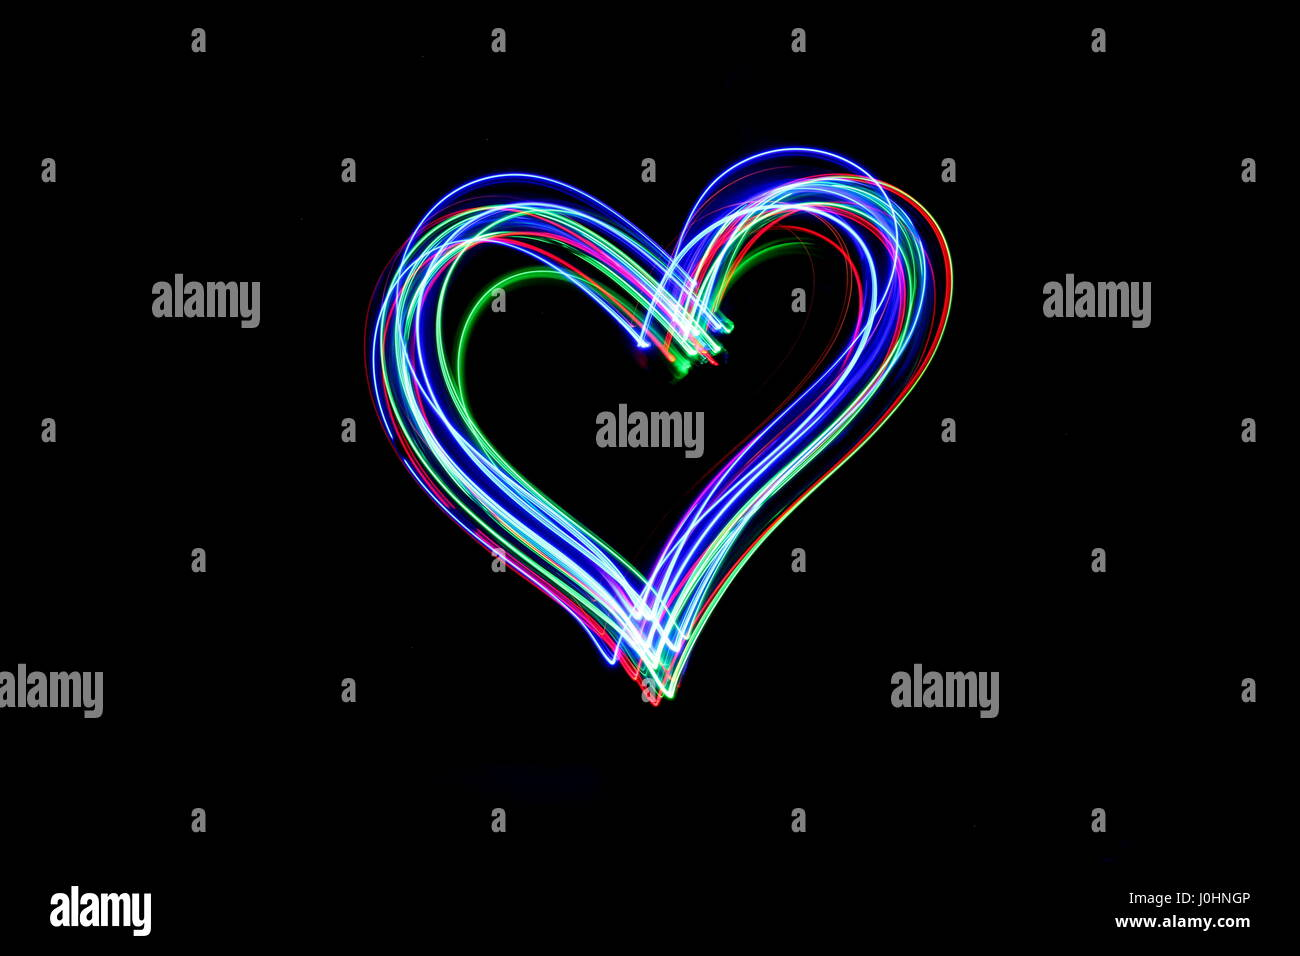 Light painting photography - long exposure photo of fairy lights, in a heart shape against a black background.  - Stock Image